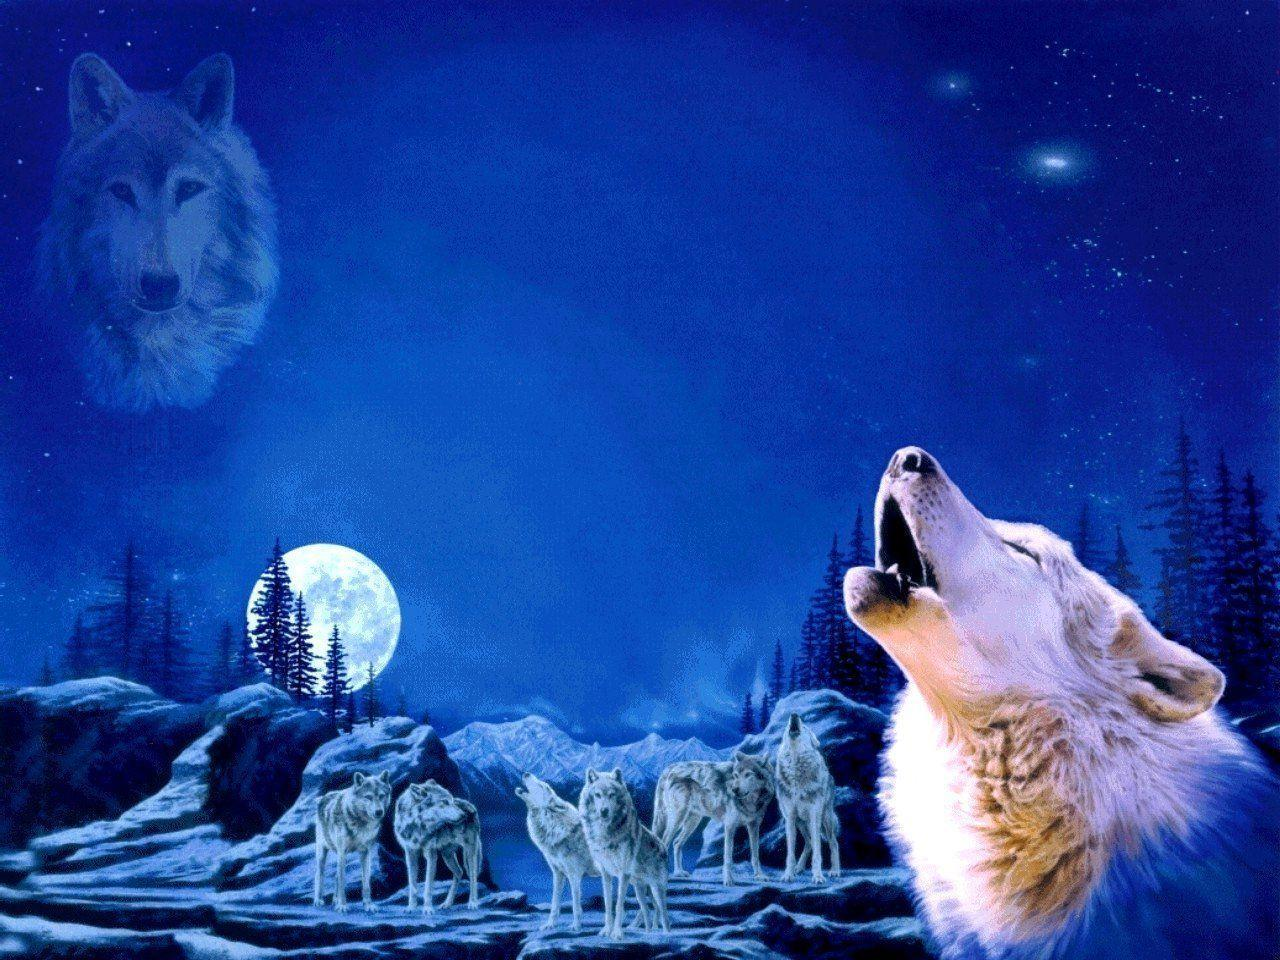 the howling movie wallpapers - photo #32